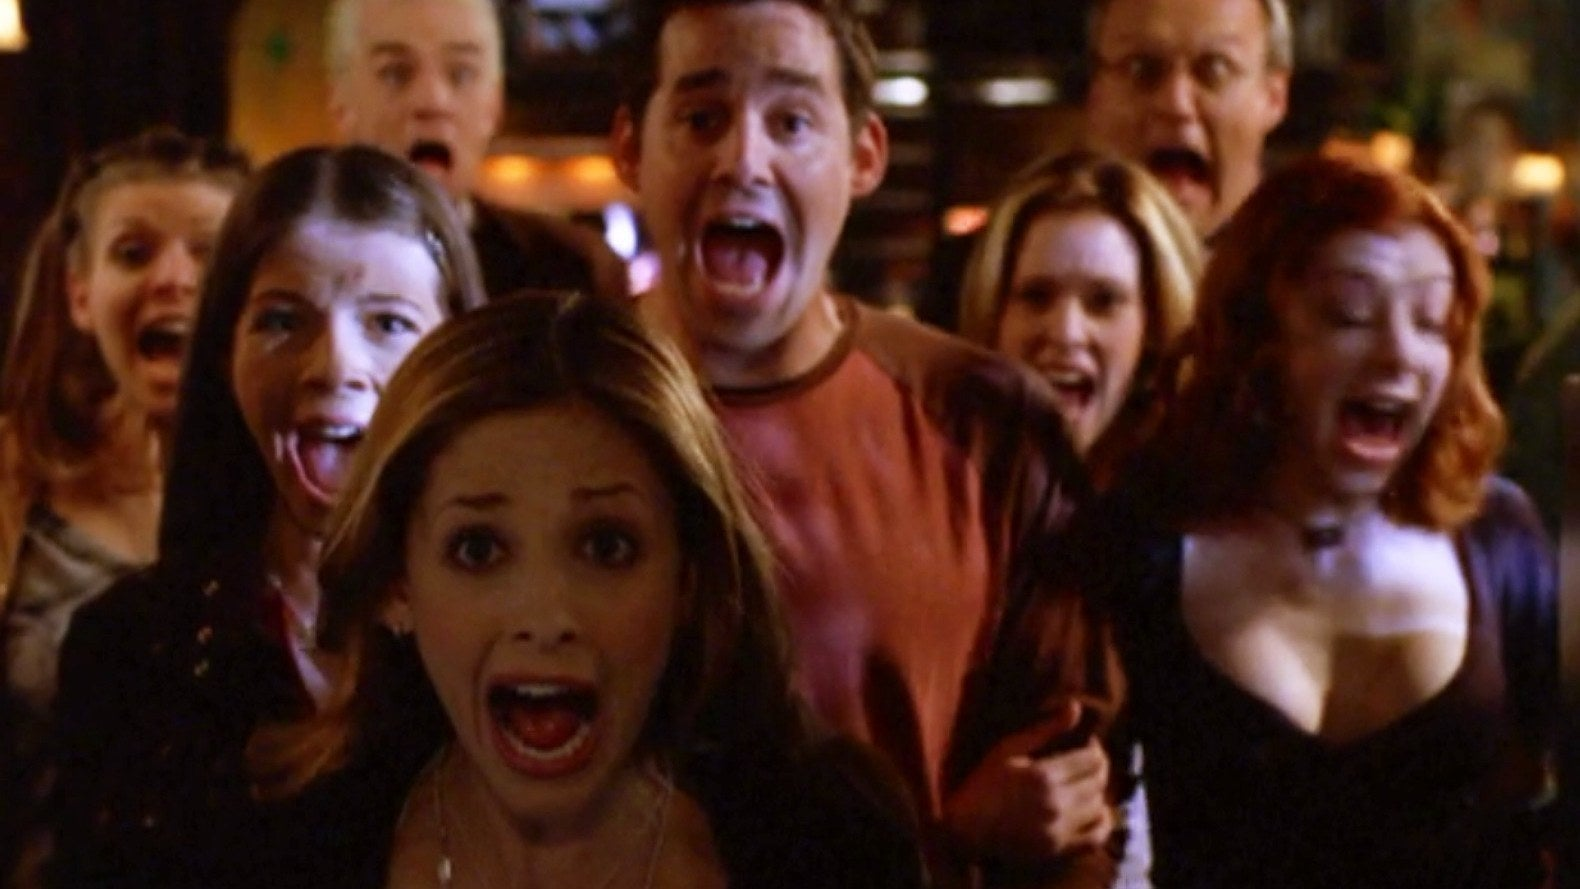 This Fox Executive Has The Best Response To A Proposed Buffy The Vampire Slayer Reboot